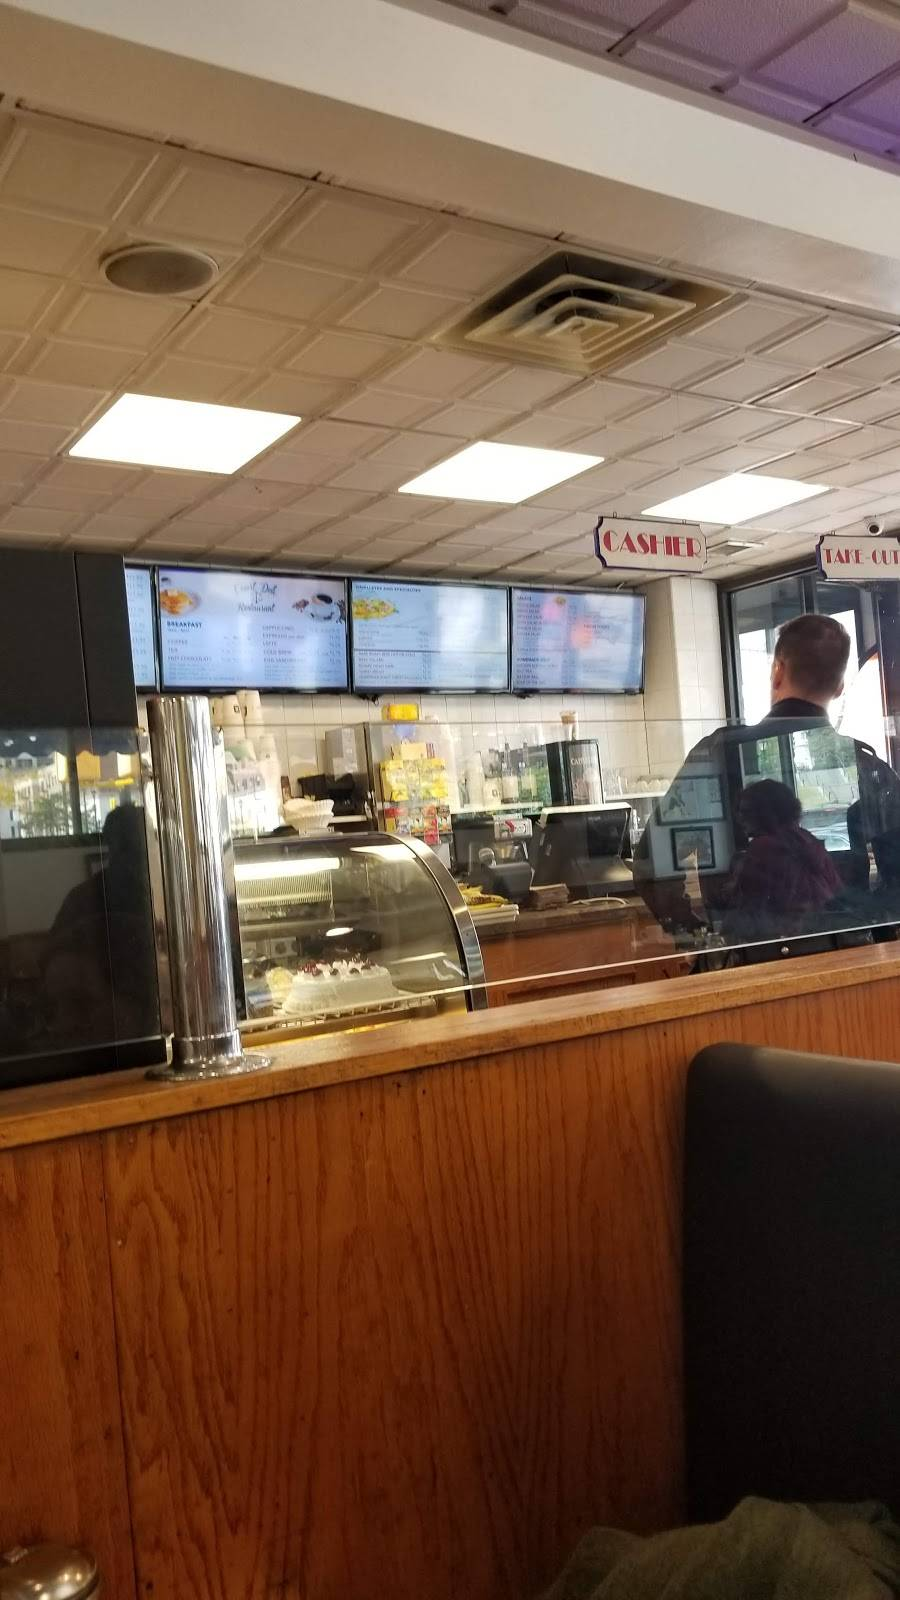 Court Deli | meal takeaway | 96 E 161st St, Bronx, NY 10451, USA | 7189931380 OR +1 718-993-1380